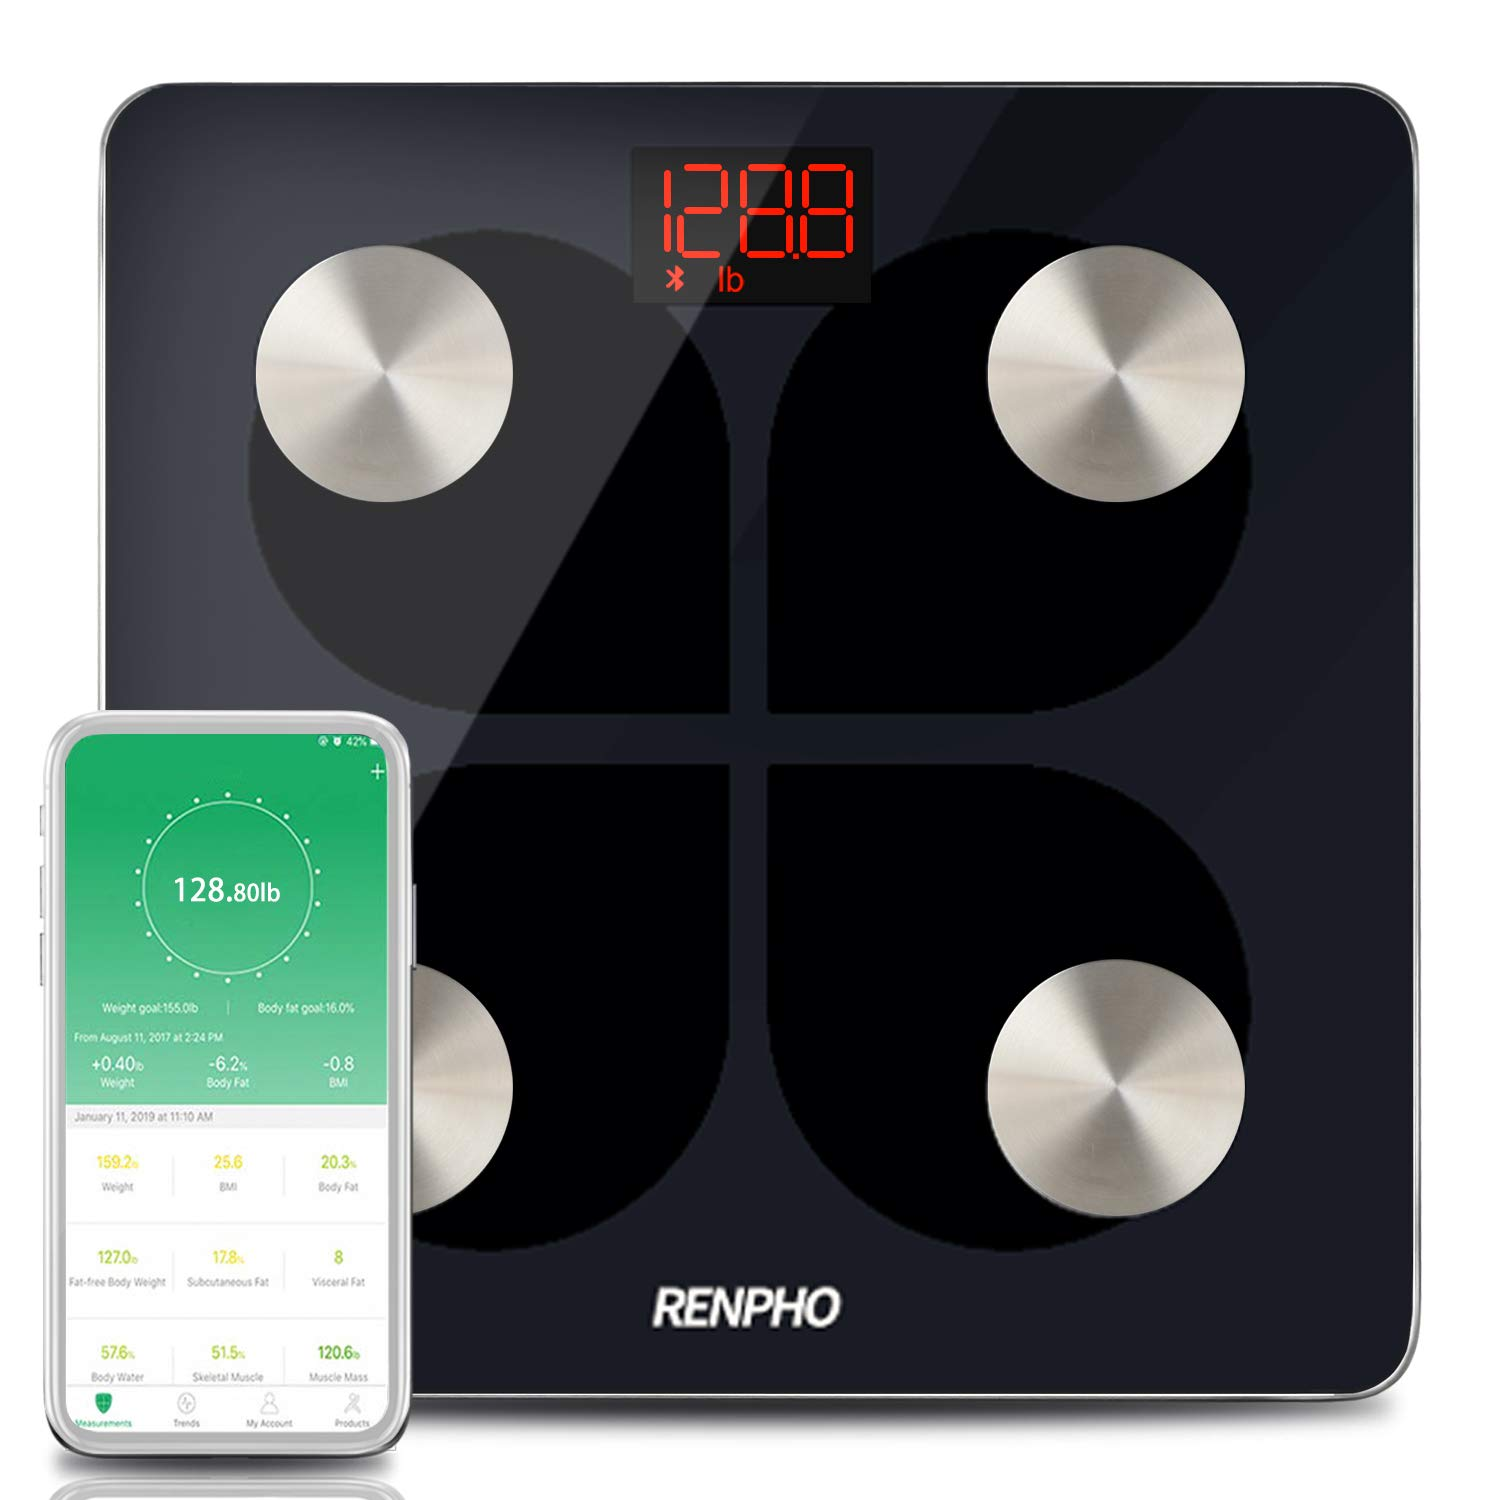 RENPHO Digital Smart Bluetooth Scale USB Rechargeable Bathroom Body Fat Monitor with iOS &Android Smatrphone App, 396 lbs